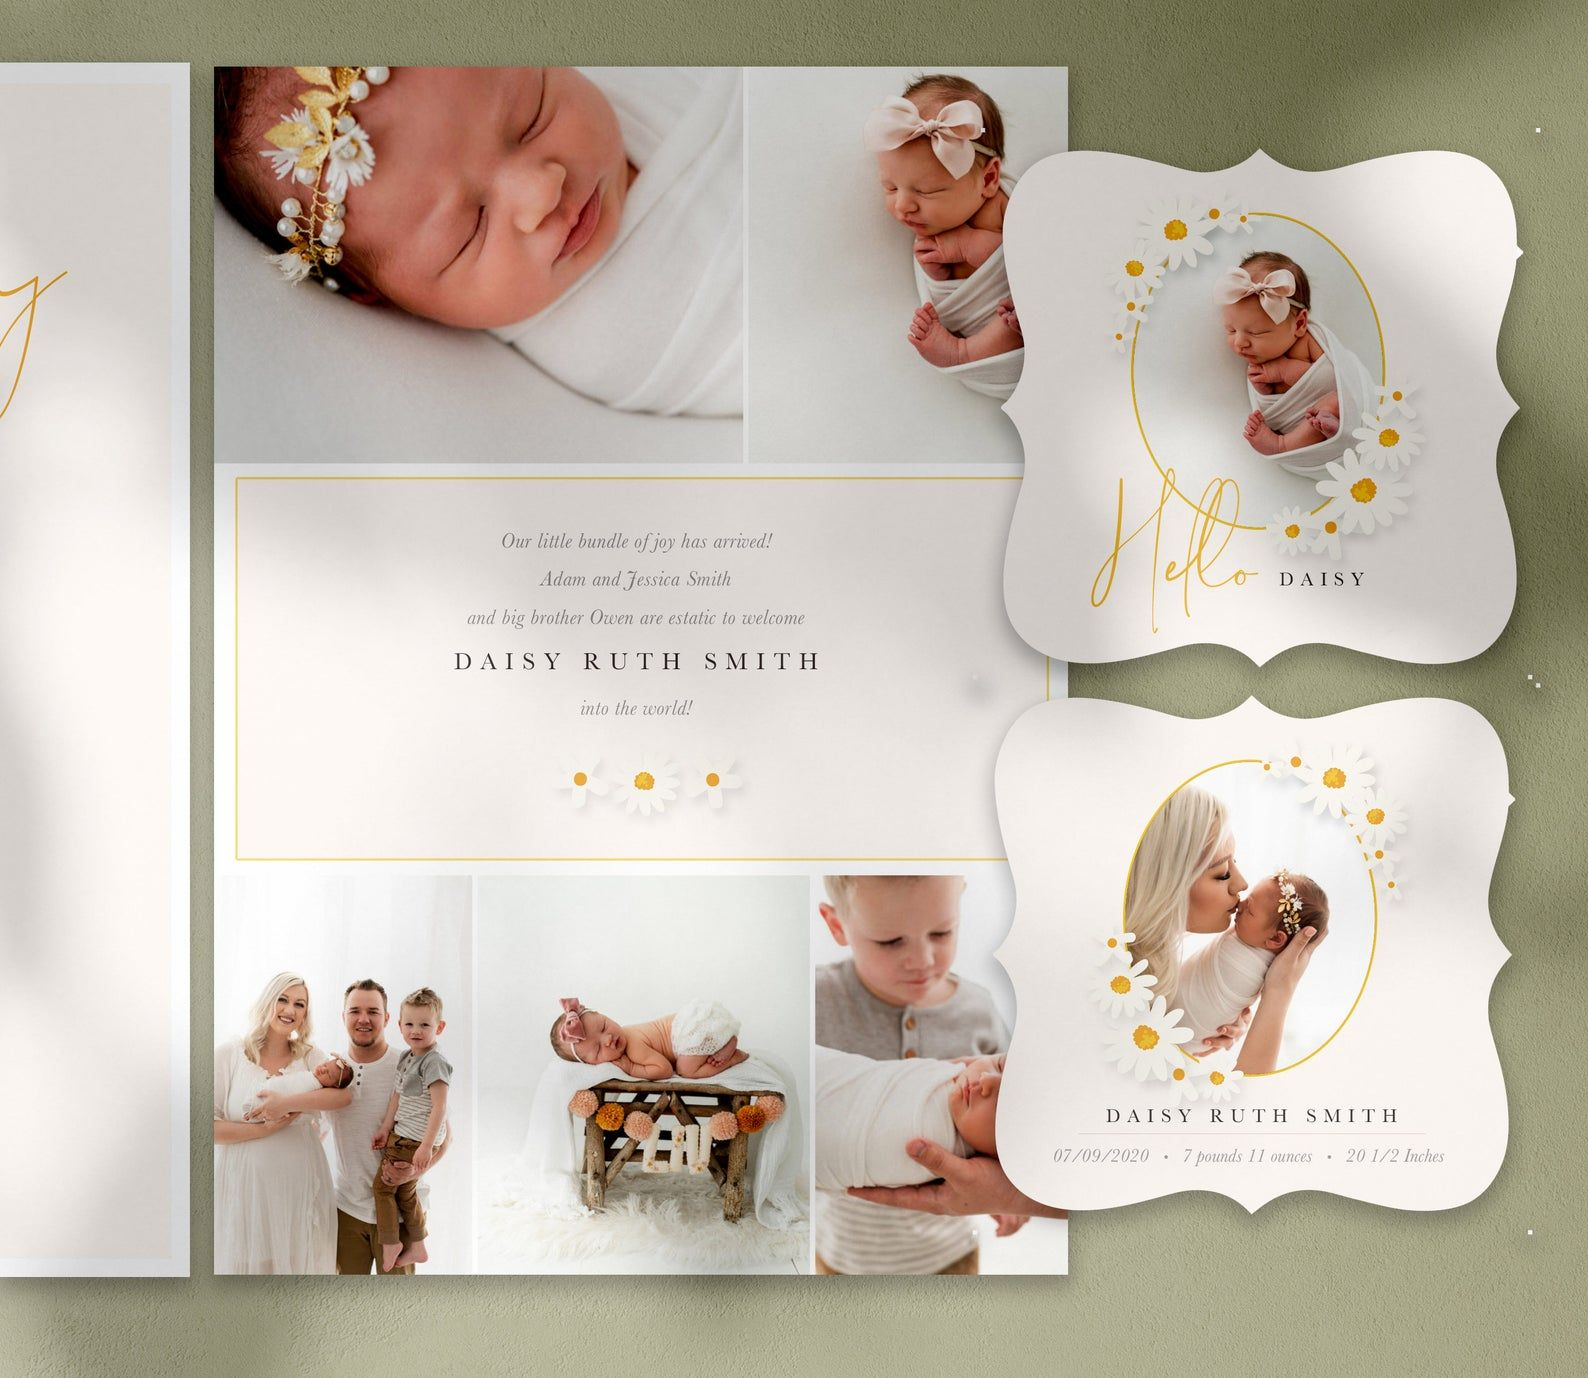 Daisies Birth Announcement Card Free Matching 3x3 Ornate Etsy Photoshop Template Design Photo Card Template Birth Announcement Card